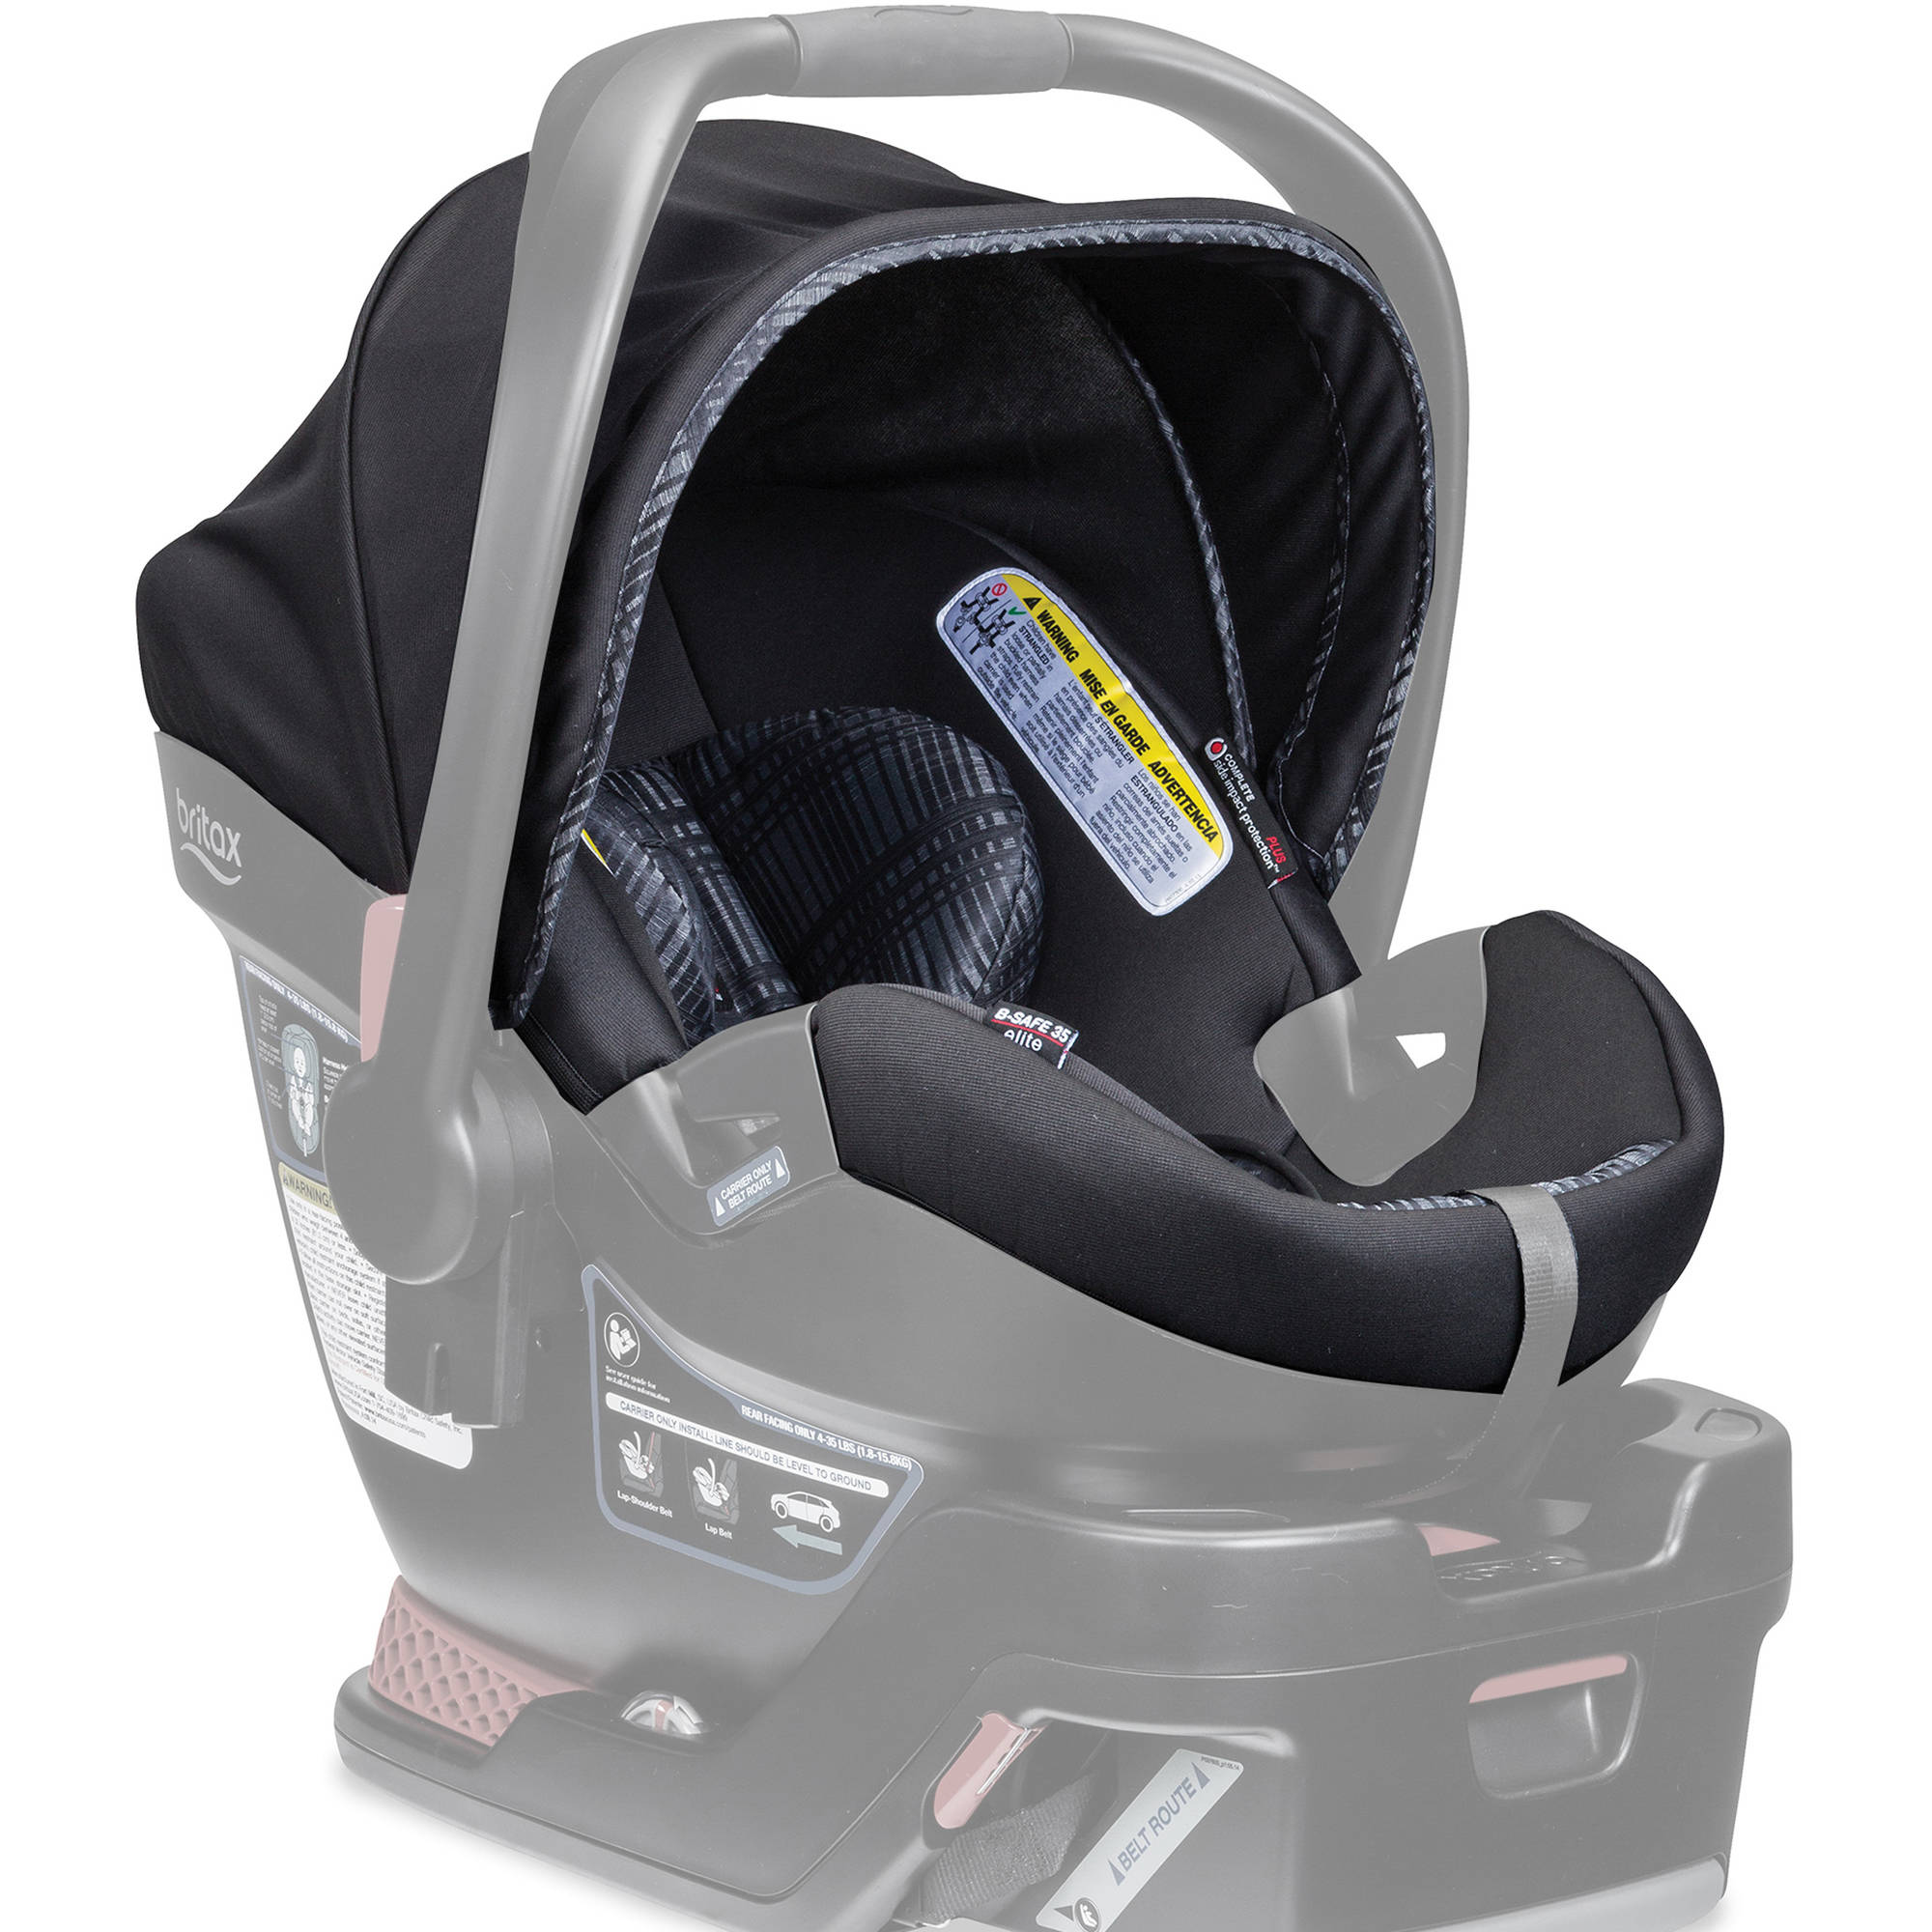 Britax Infant Car Seat Cover Set, Domino